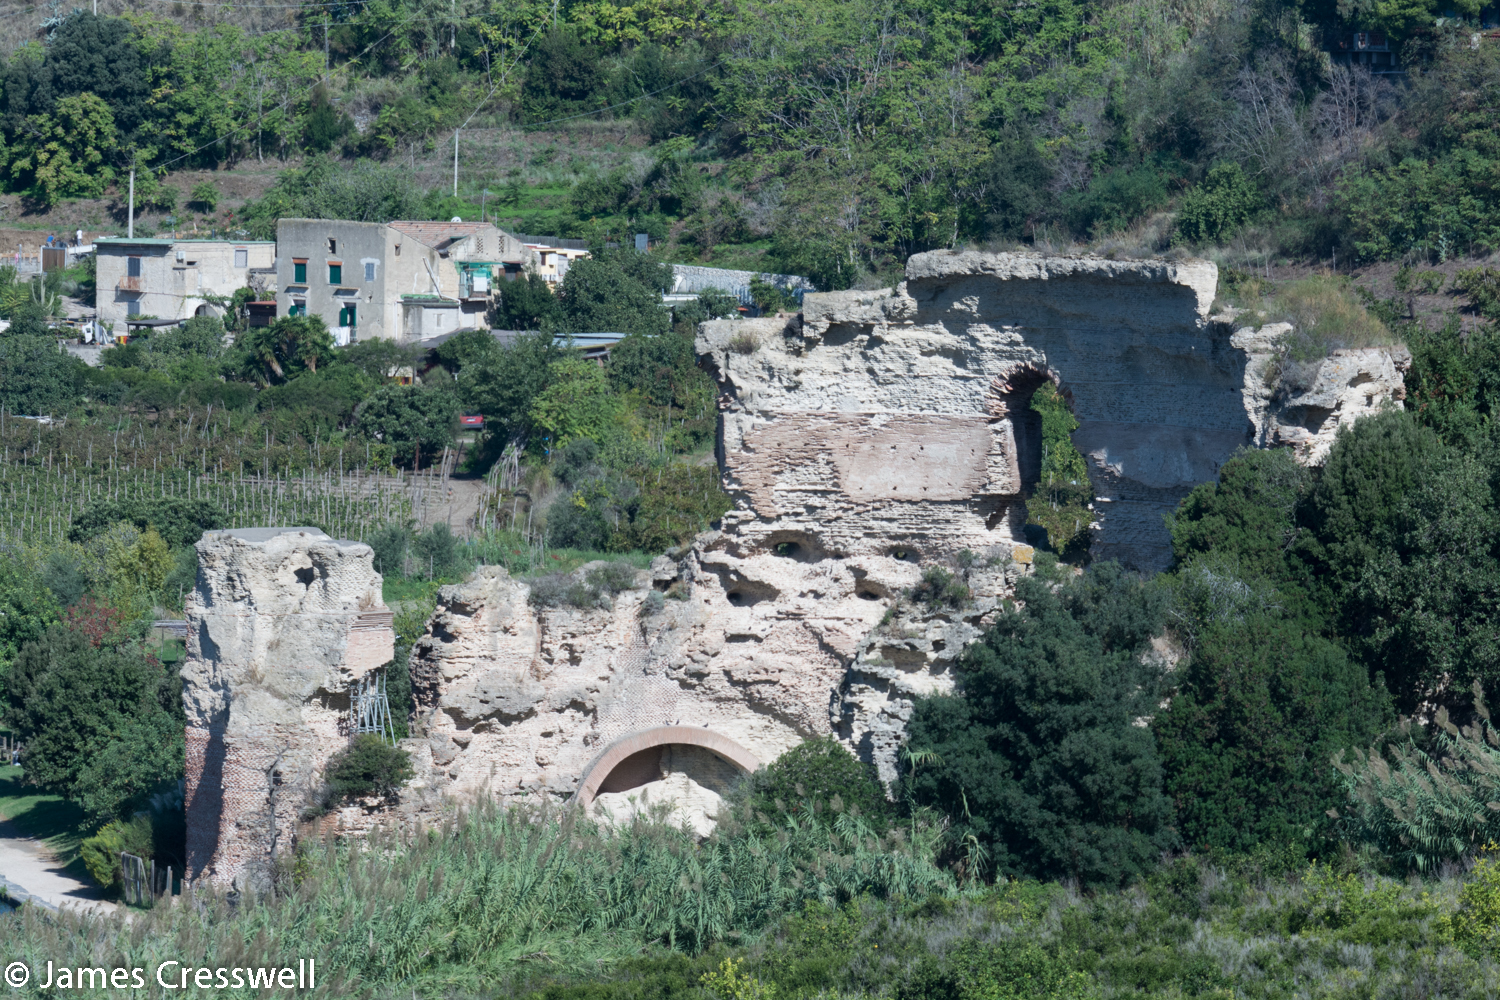 Ruins of a Roman temple